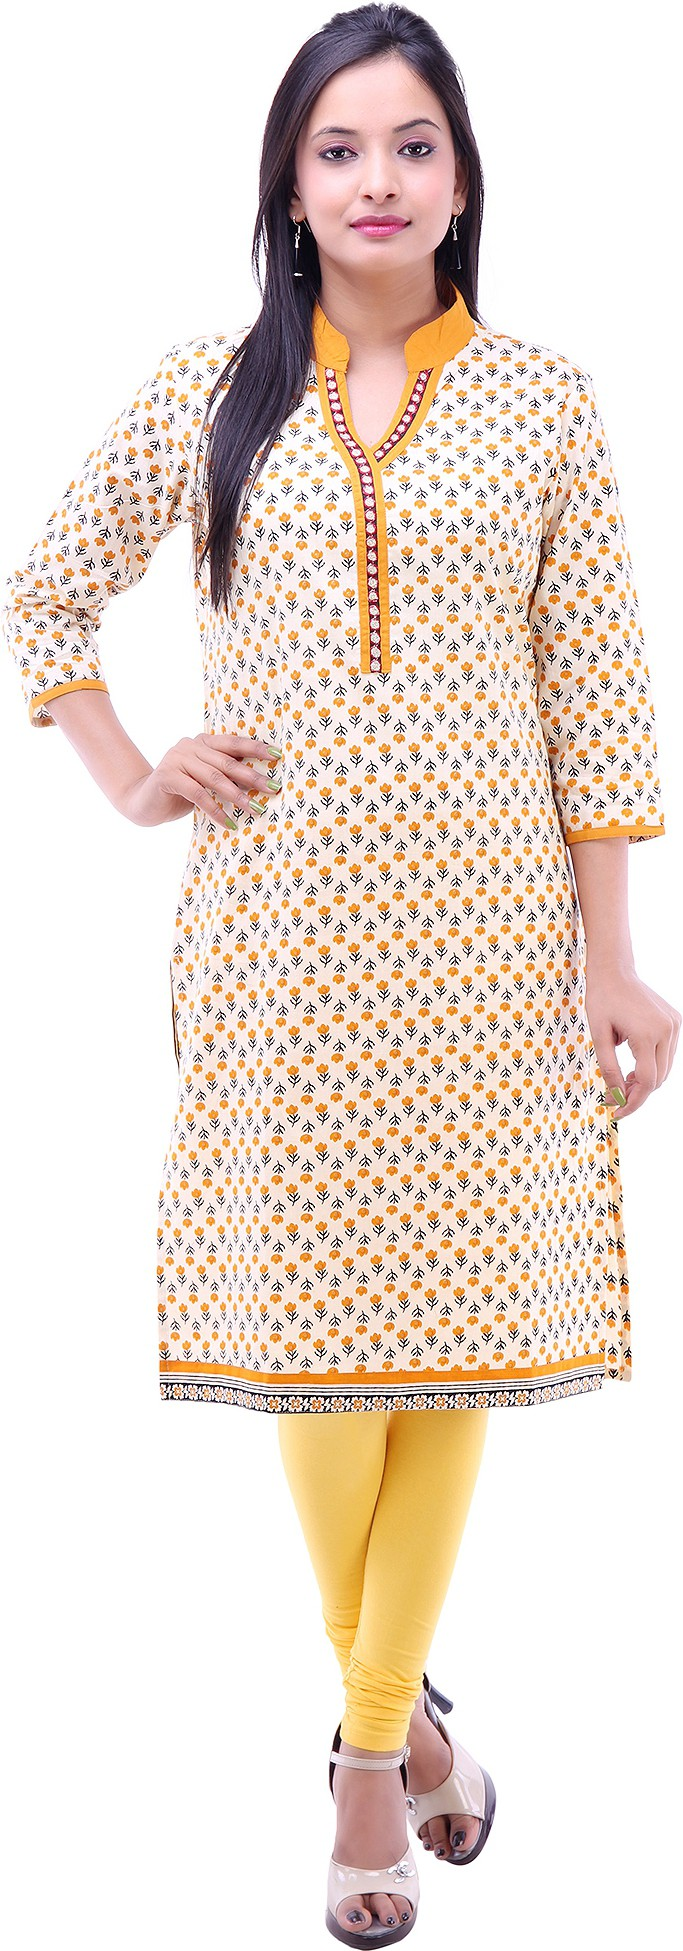 Kyaara Floral Print Womens Straight Kurta(Yellow, White)